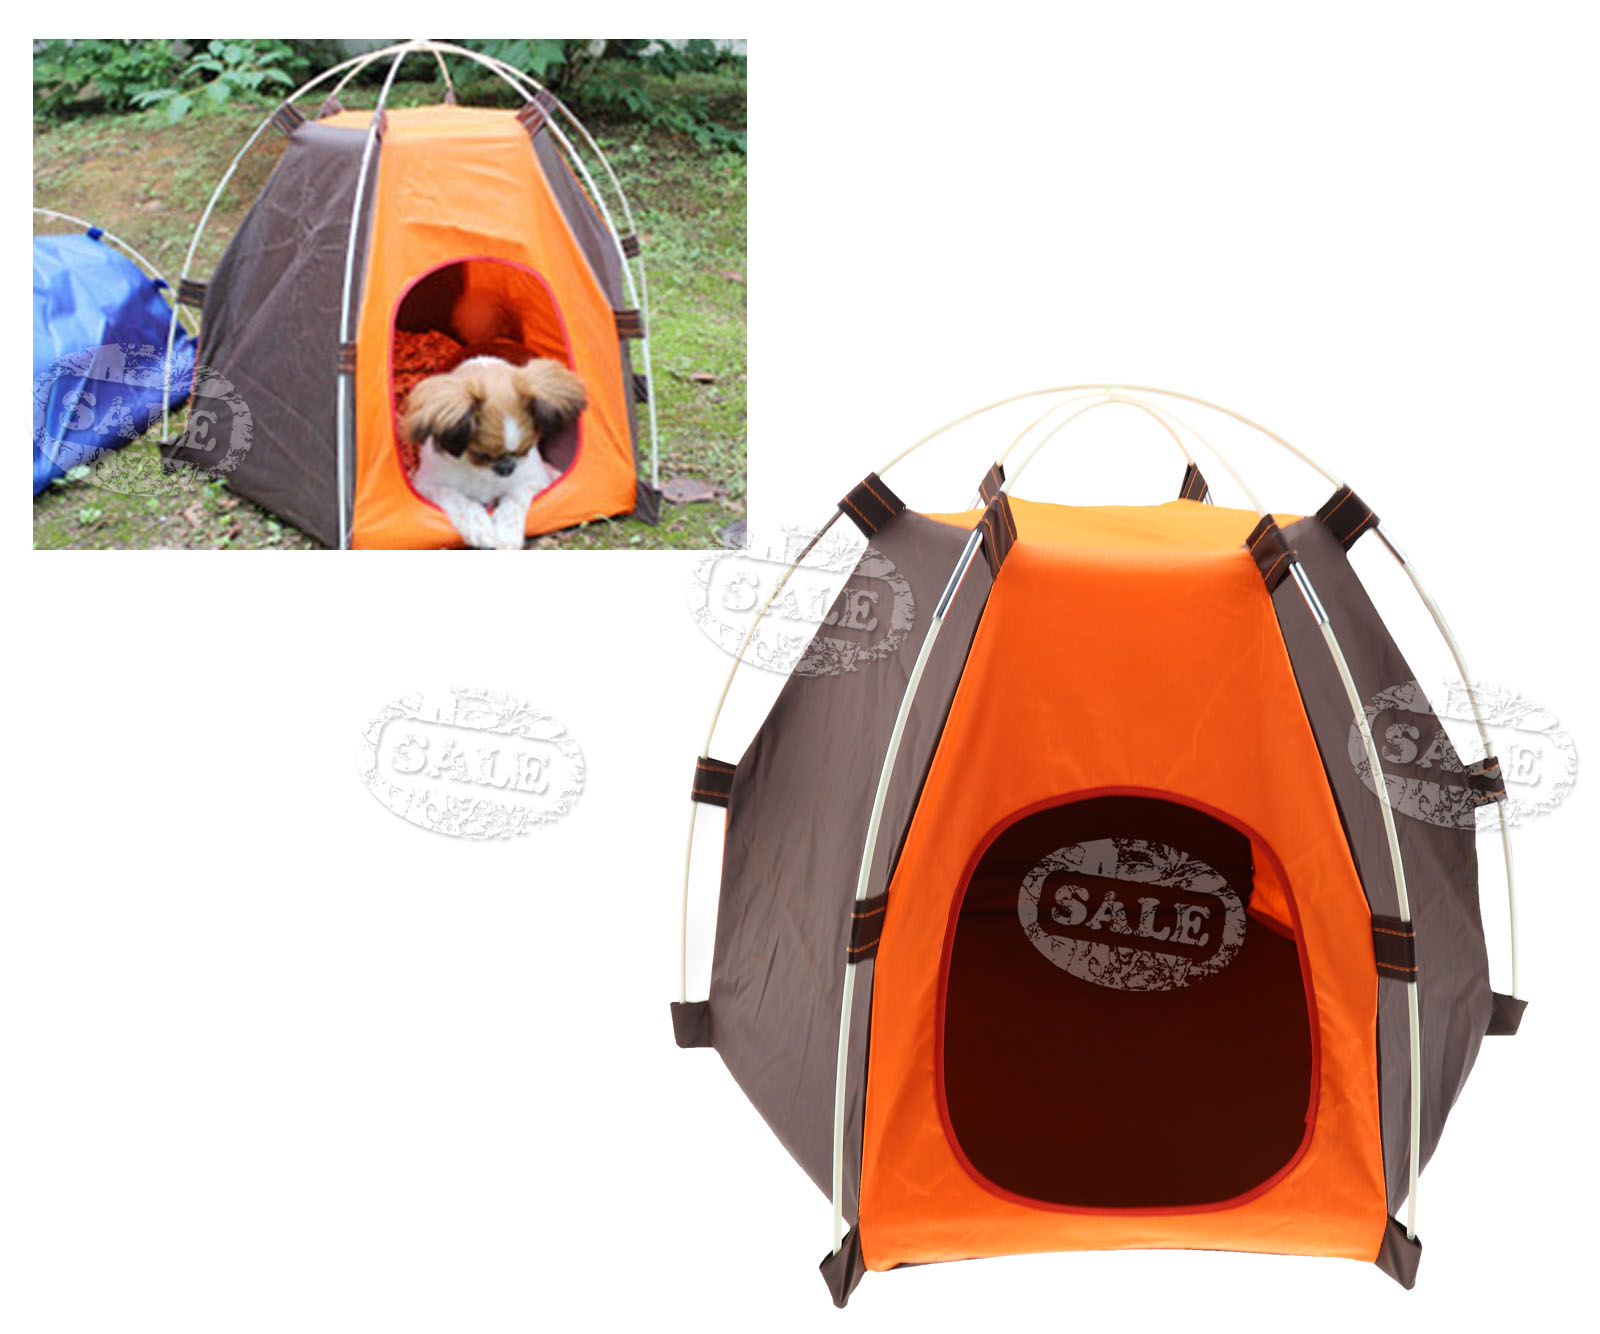 folding portable pet tent camp puppy dogs cats bed outdoor house waterproof ebay. Black Bedroom Furniture Sets. Home Design Ideas